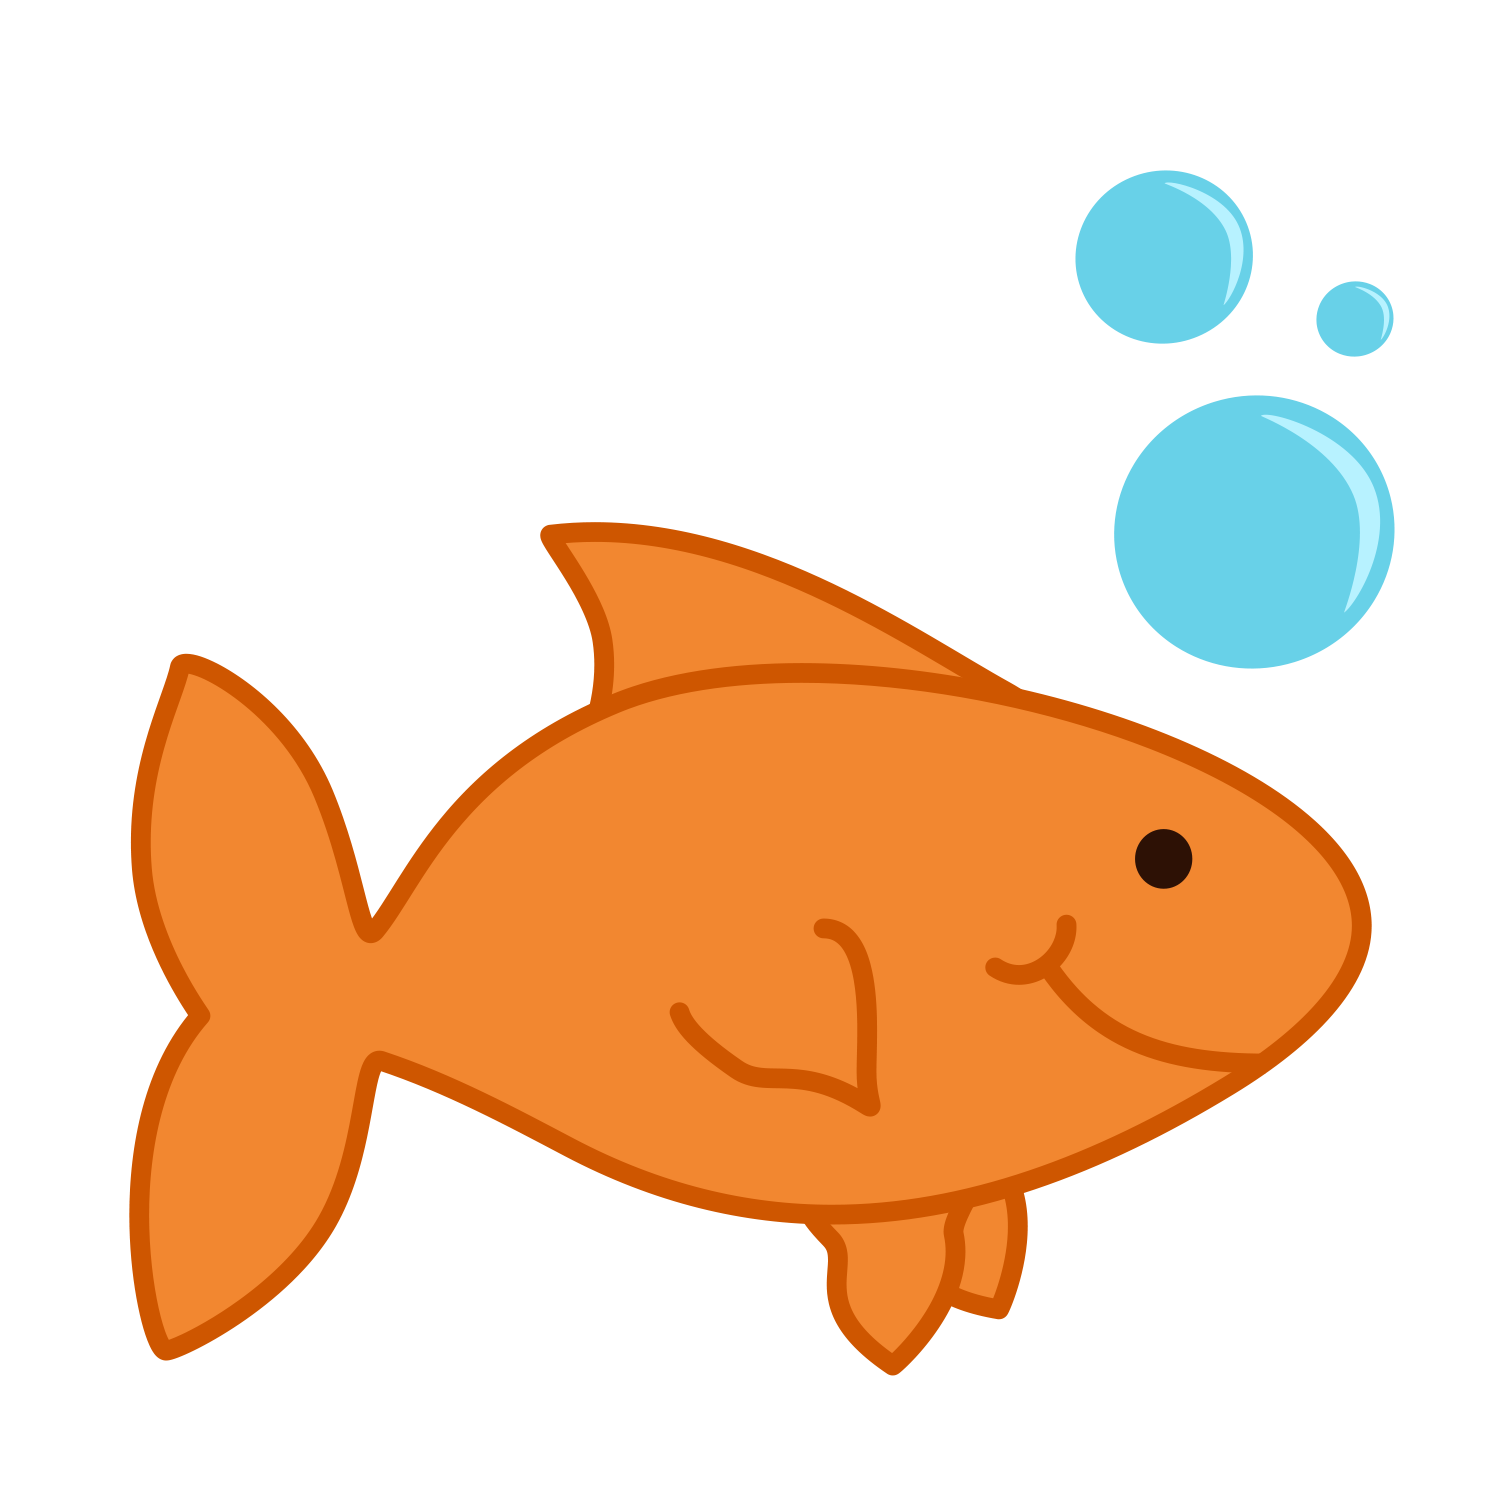 clip free library Goldfish clipart. Image result for bbs